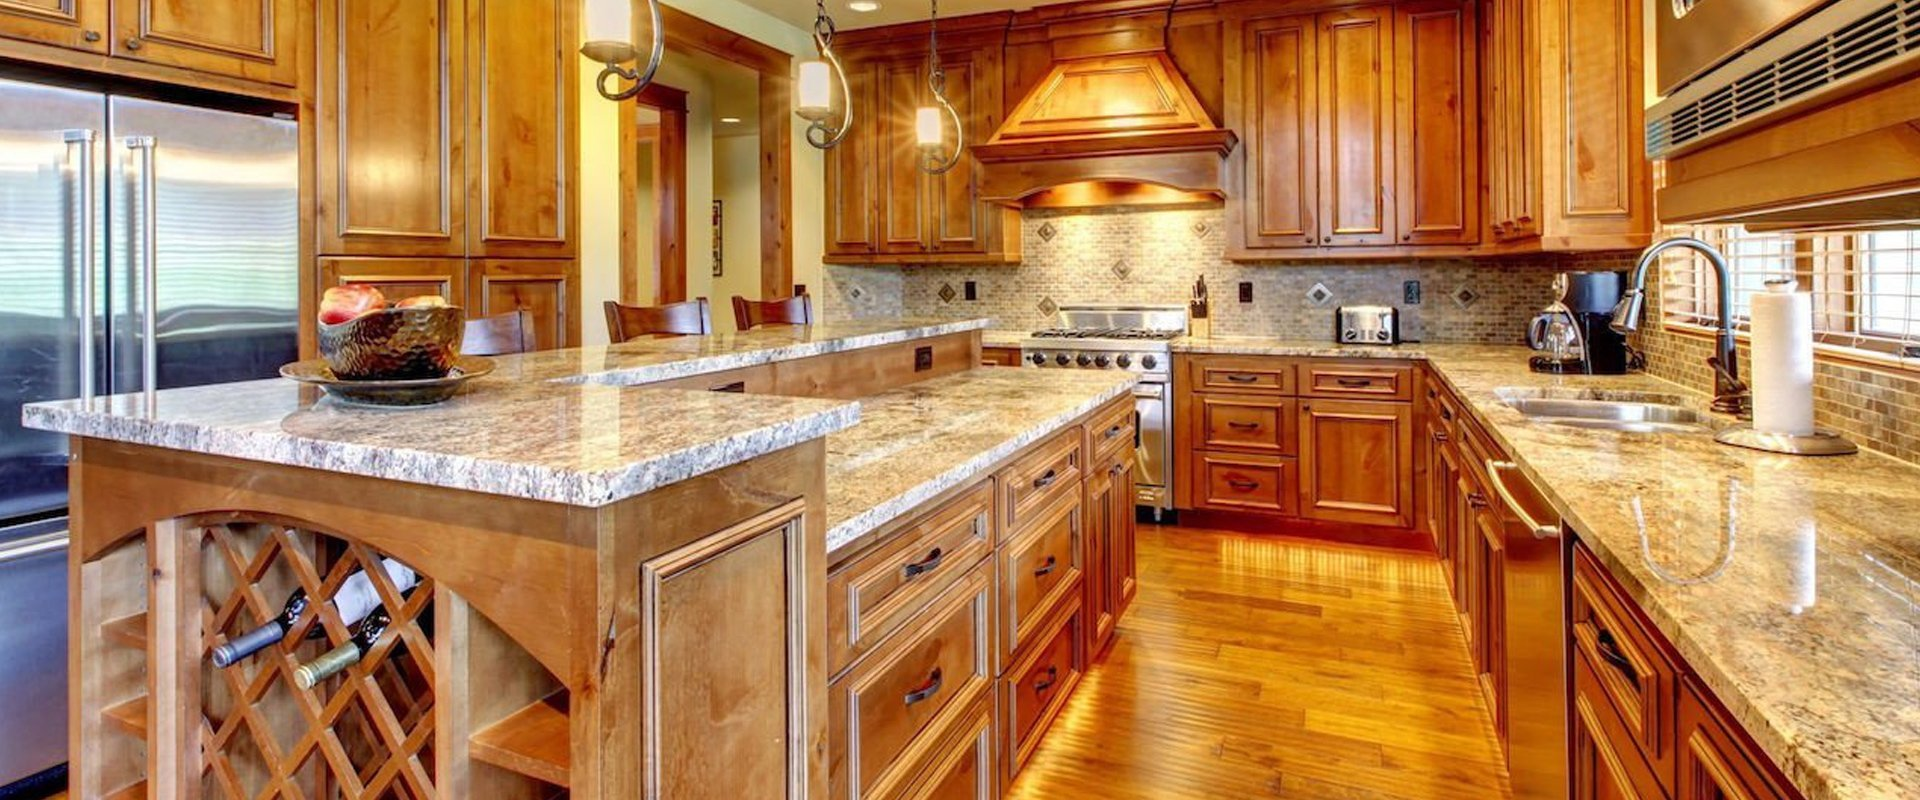 granite kitchen counterrops